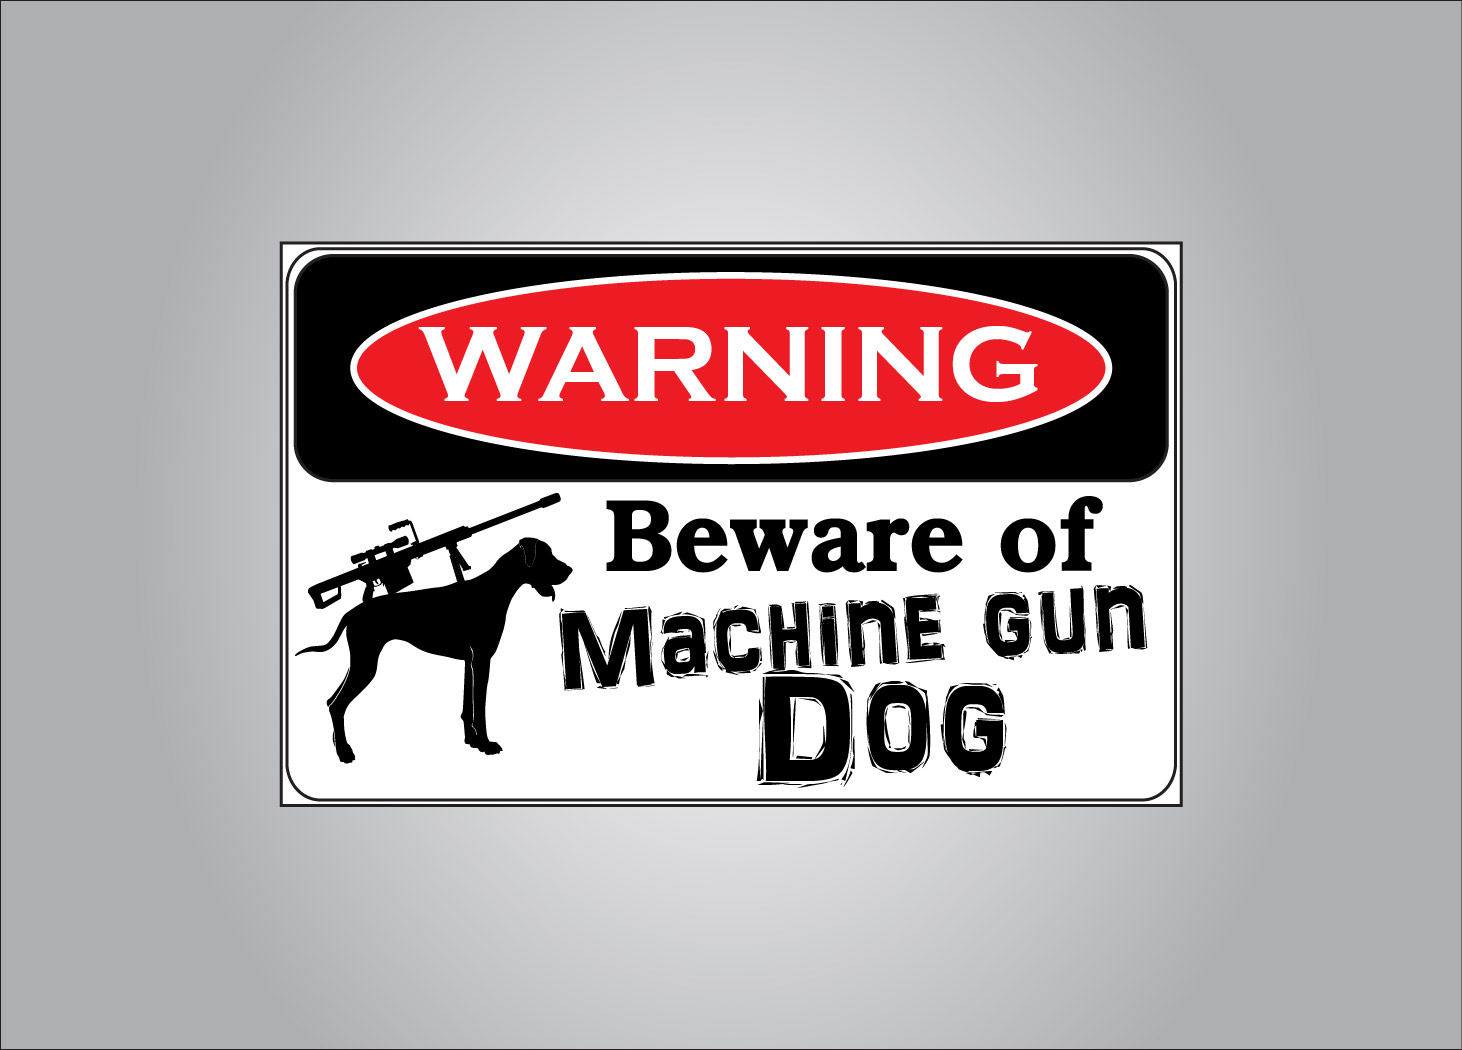 Finally a machine gun dog warning sticker.